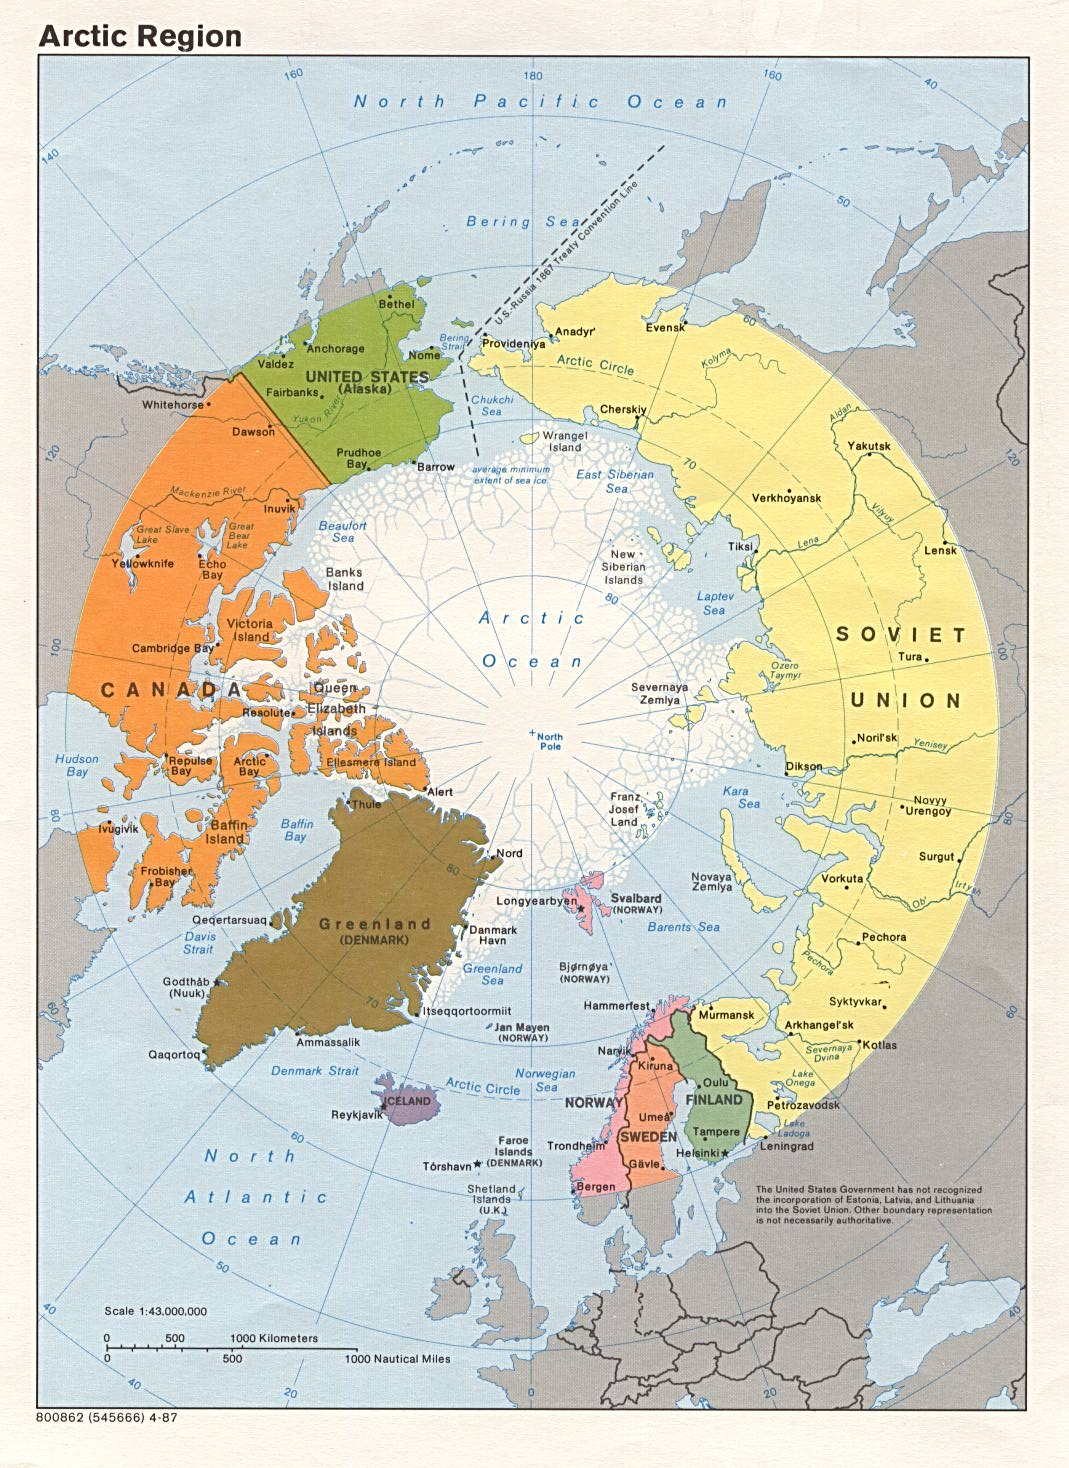 Polar Regions And Oceans Maps PerryCastañeda Map Collection - Sweden map arctic circle